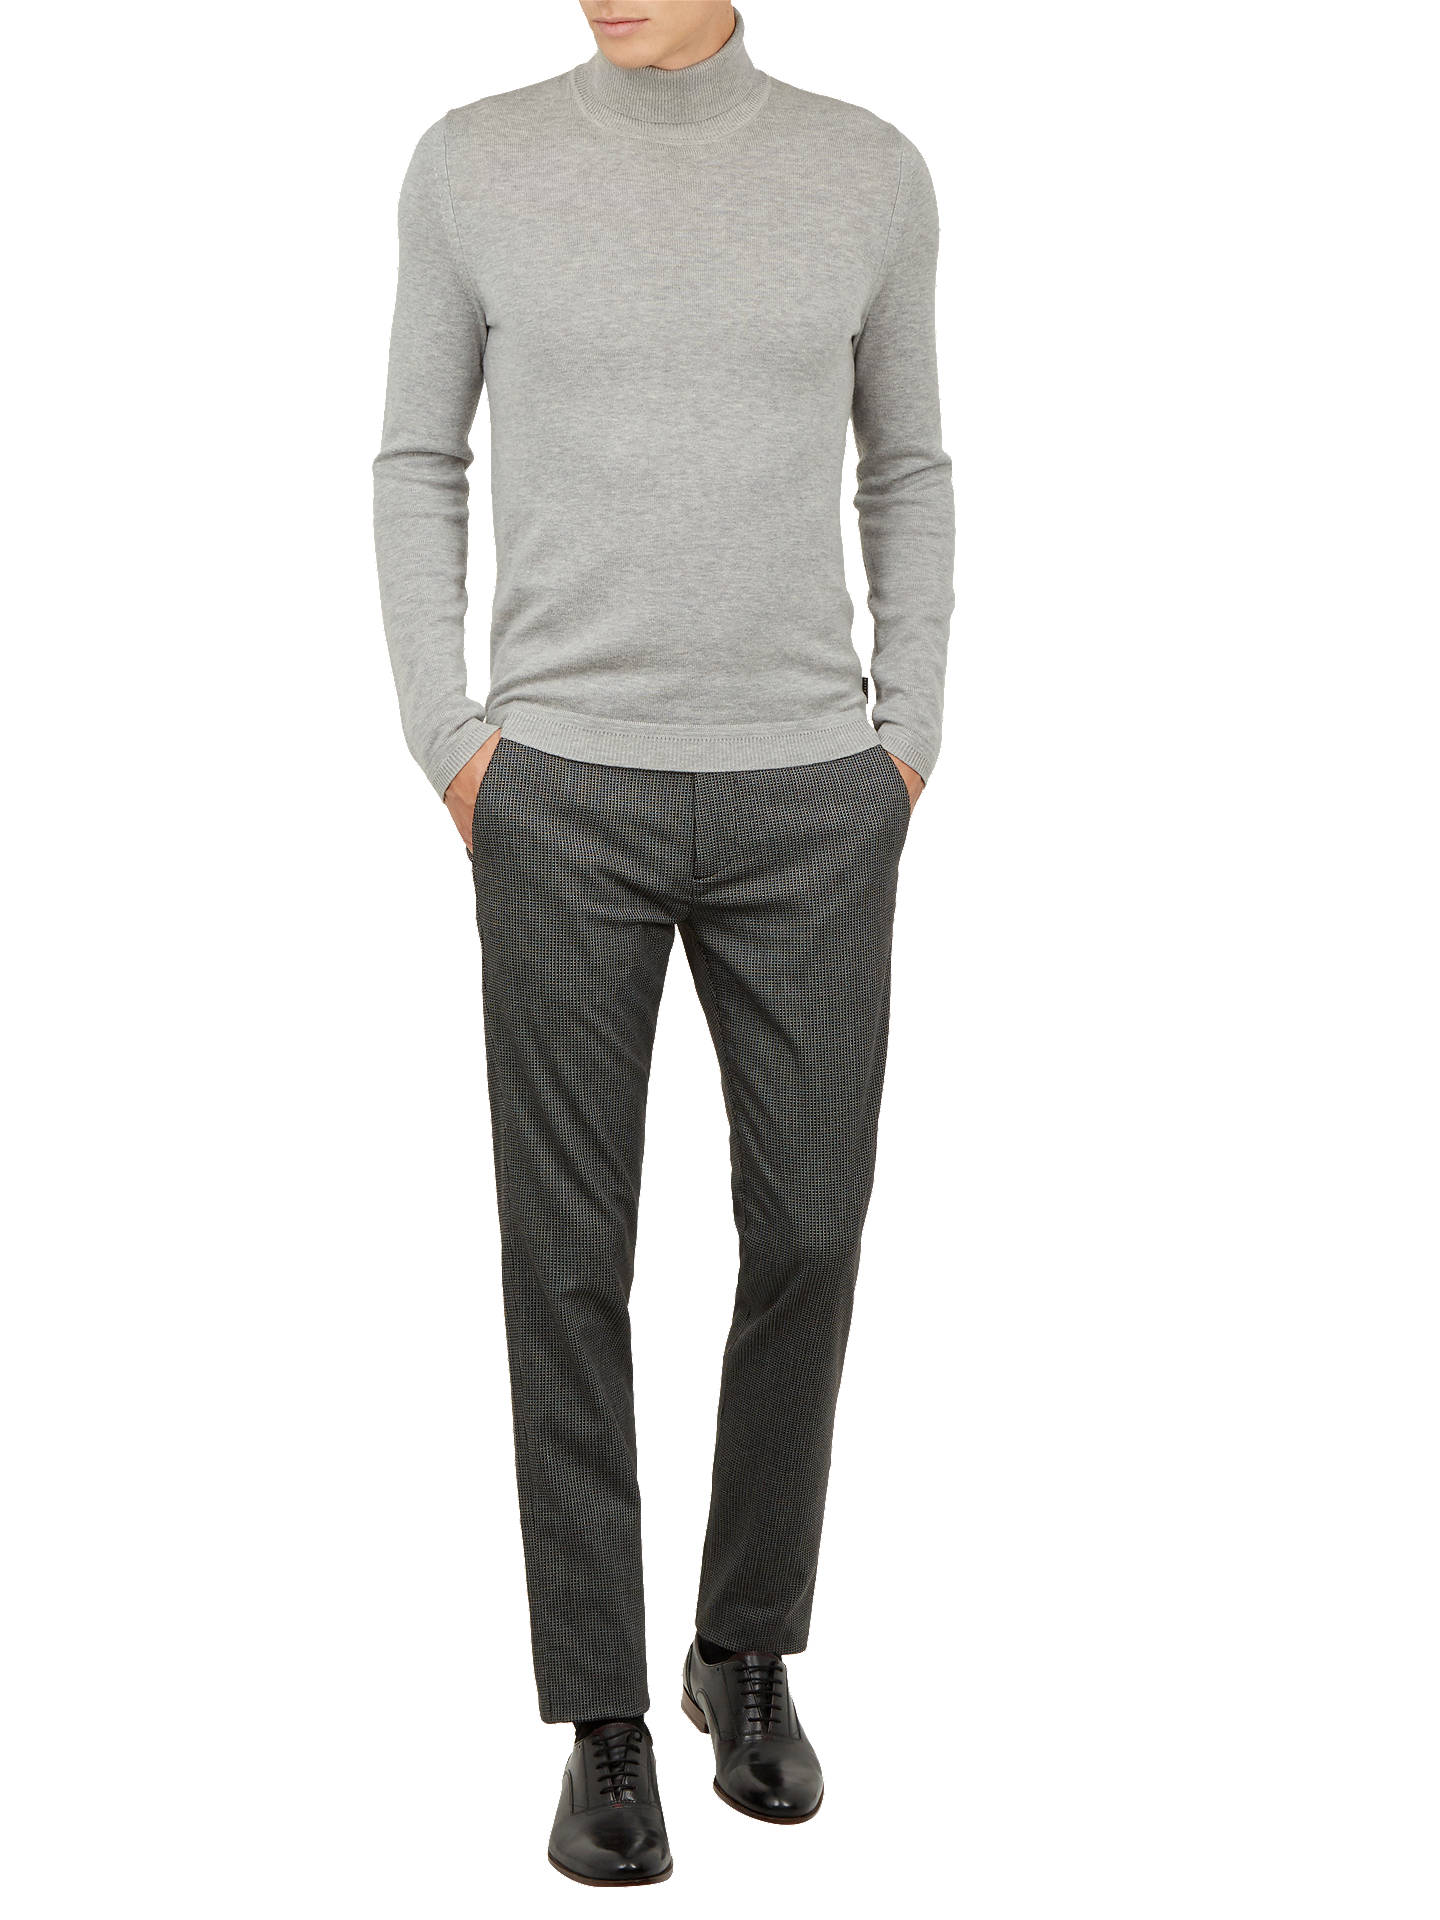 BuyTed Baker Dalee Crop Fit Tonal Trousers, Black, 32S Online at johnlewis.com